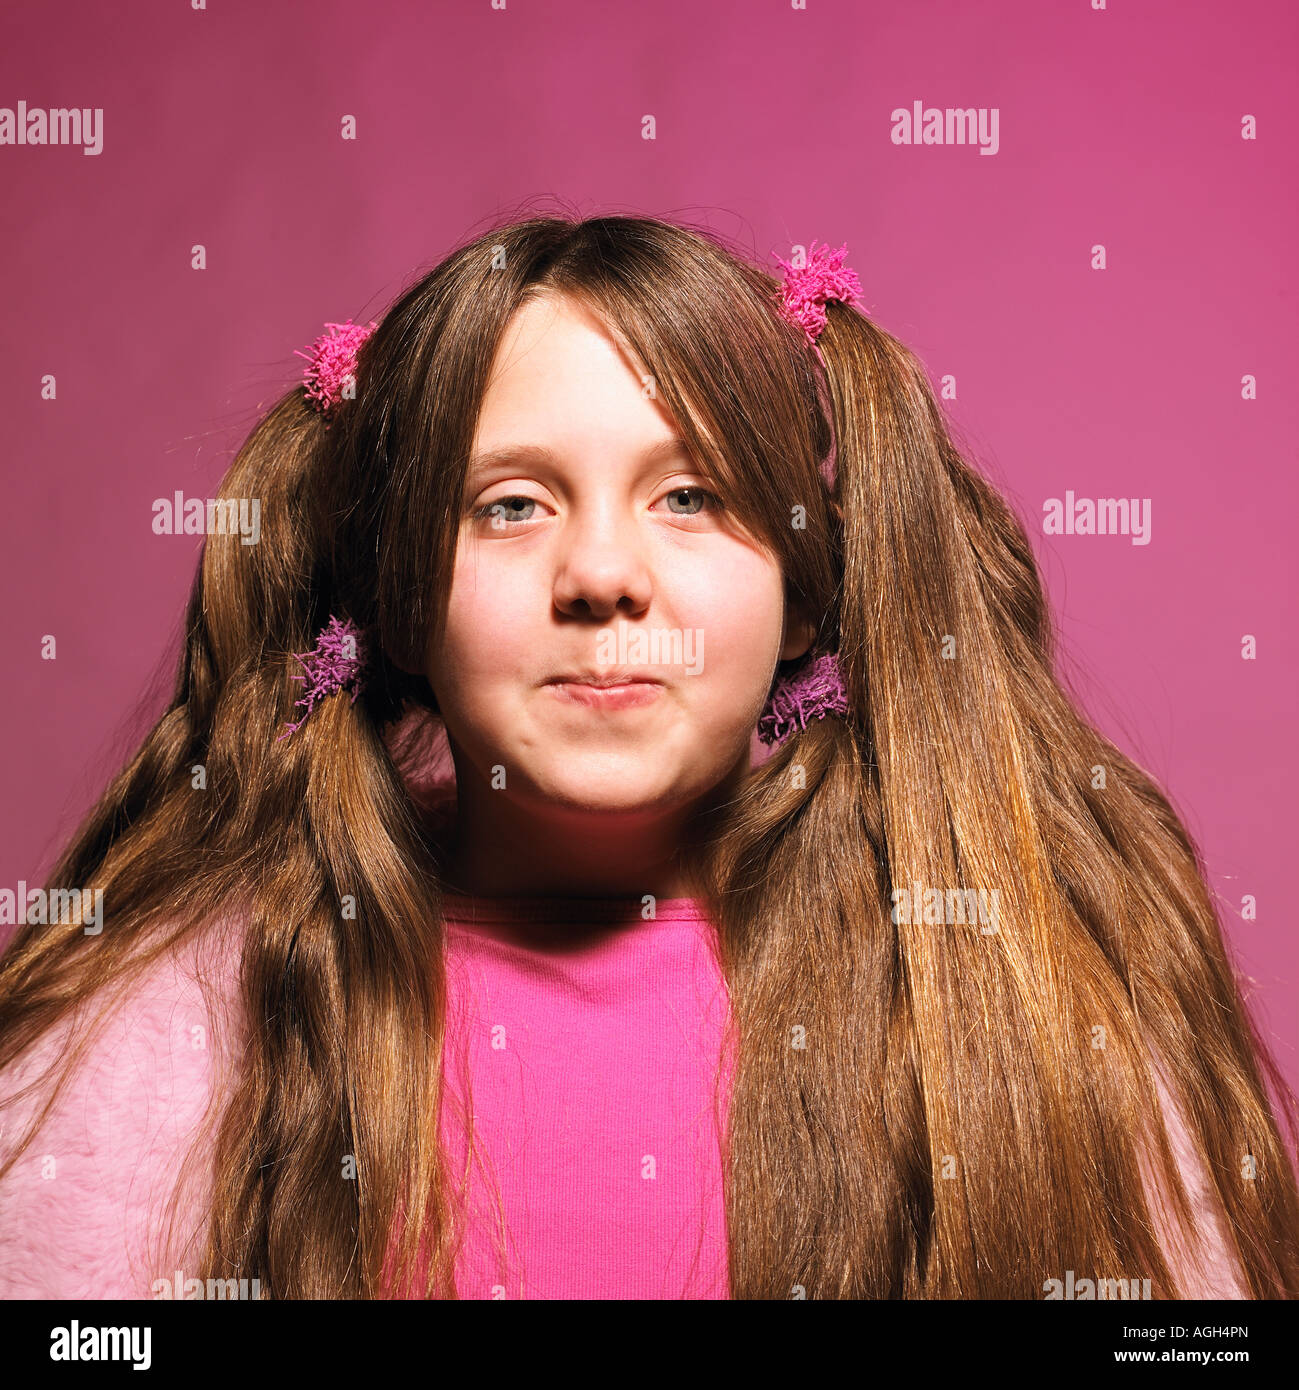 Chubby Girl Stock Photo 14210828 - Alamy-2918